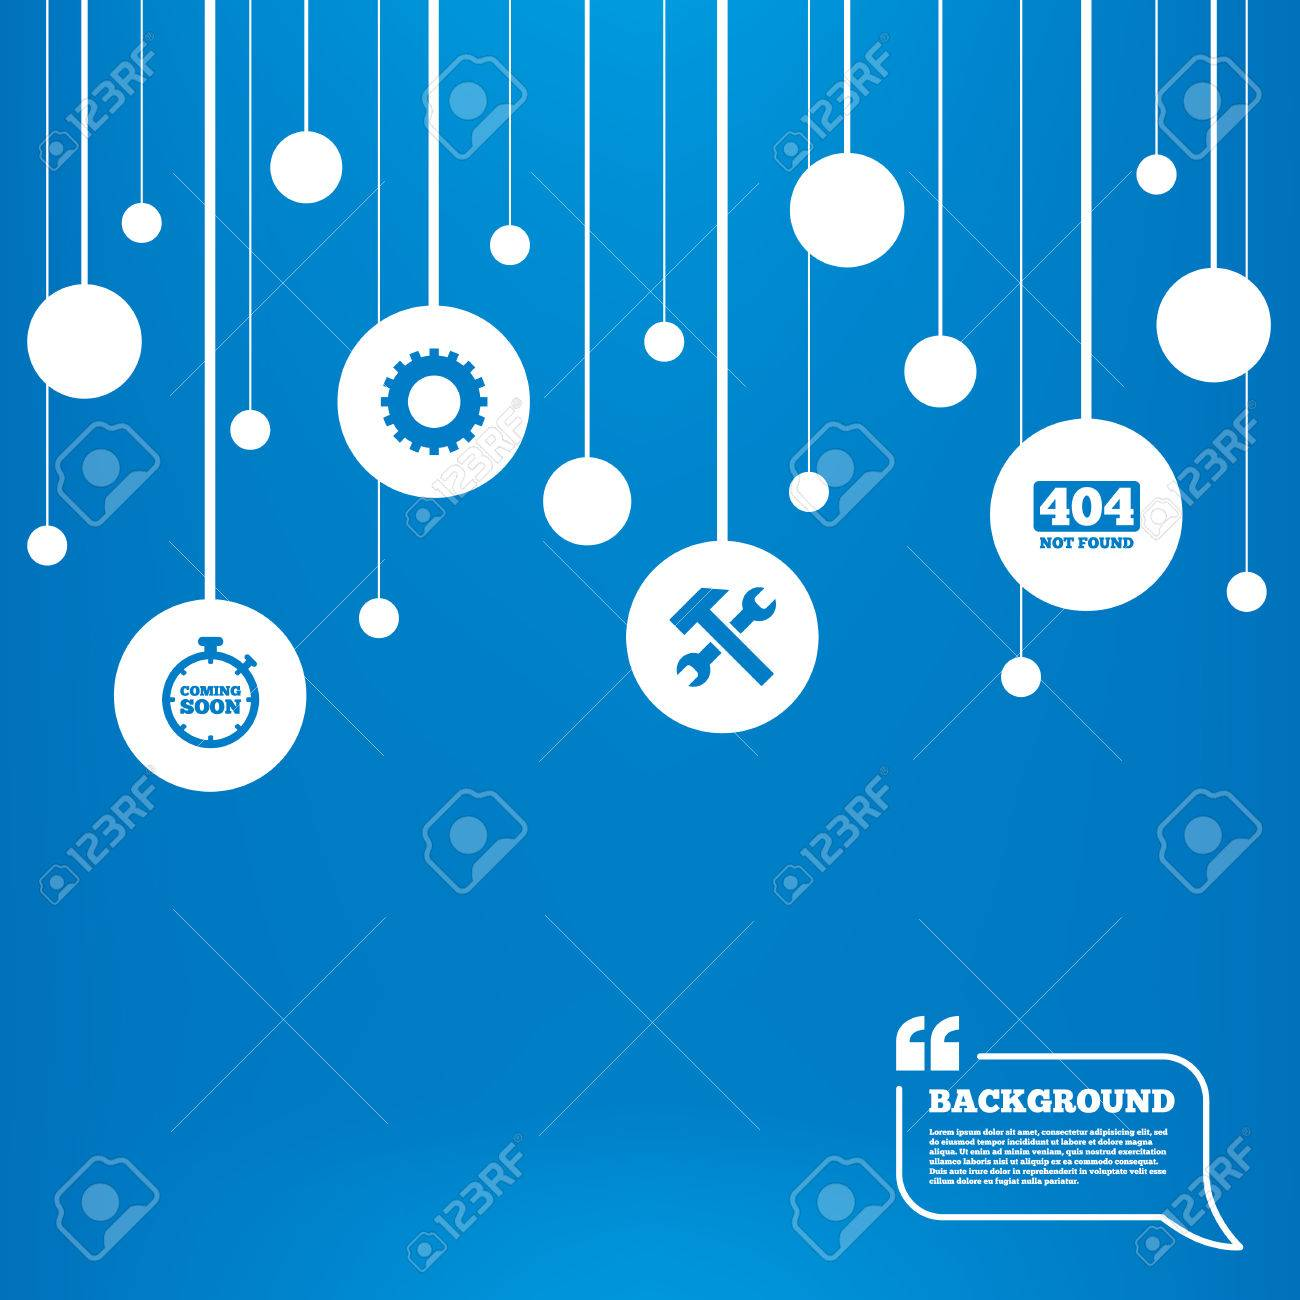 Background image 404 not found - Circles Background With Lines Coming Soon Icon Repair Service Tool And Gear Symbols